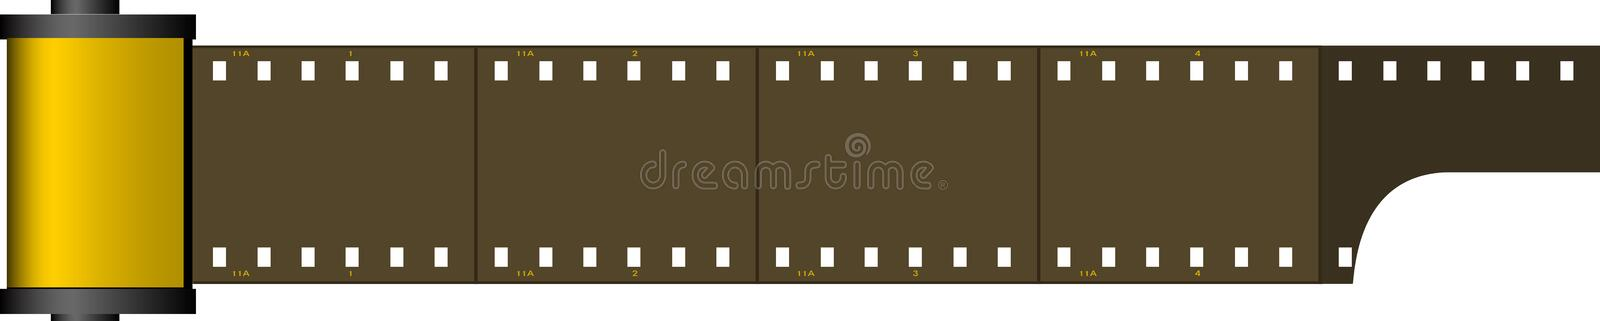 Film stock illustratie